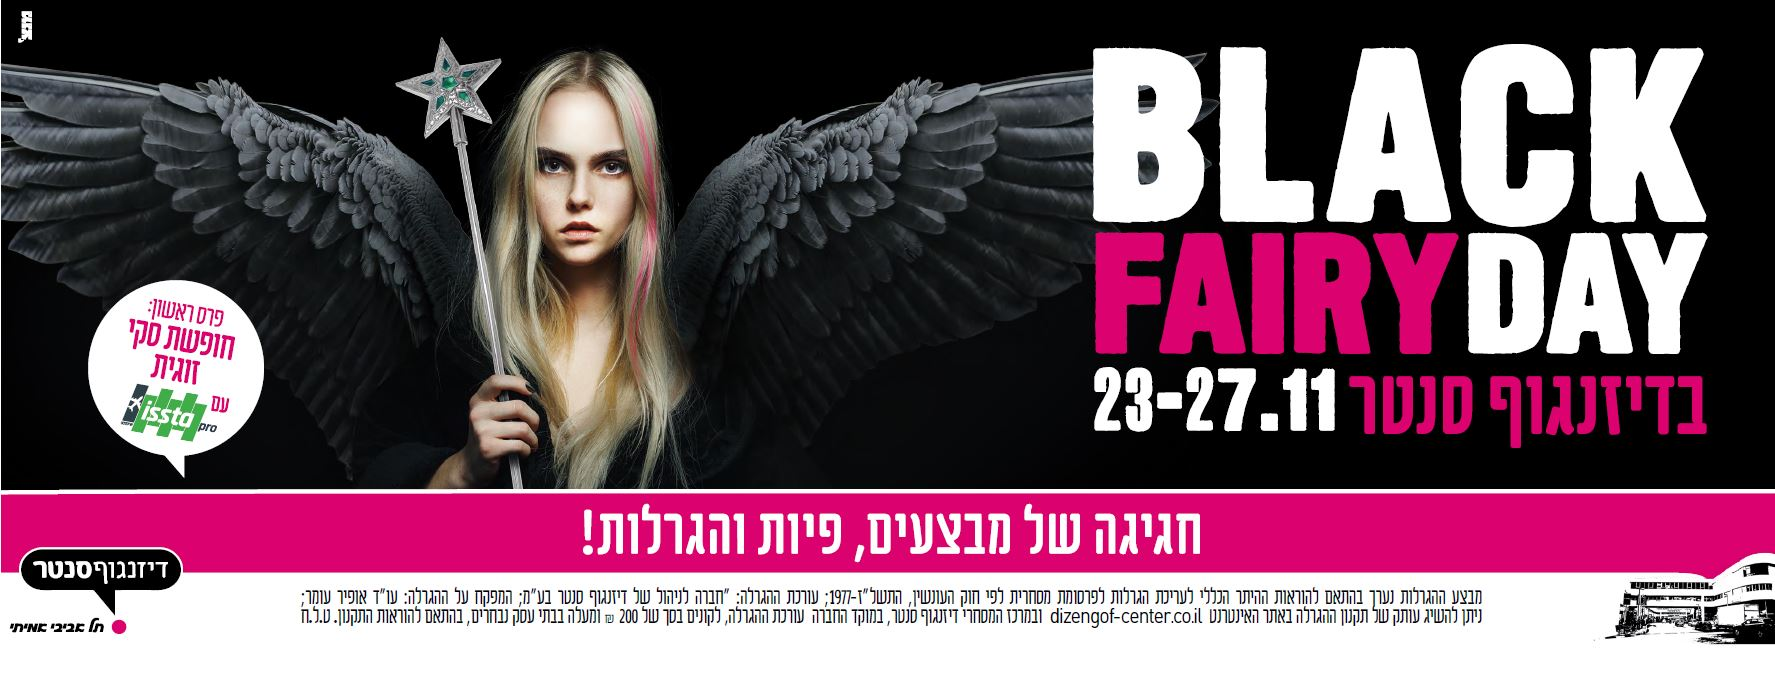 BLACKFAIRY DAY 23-27/11/2018